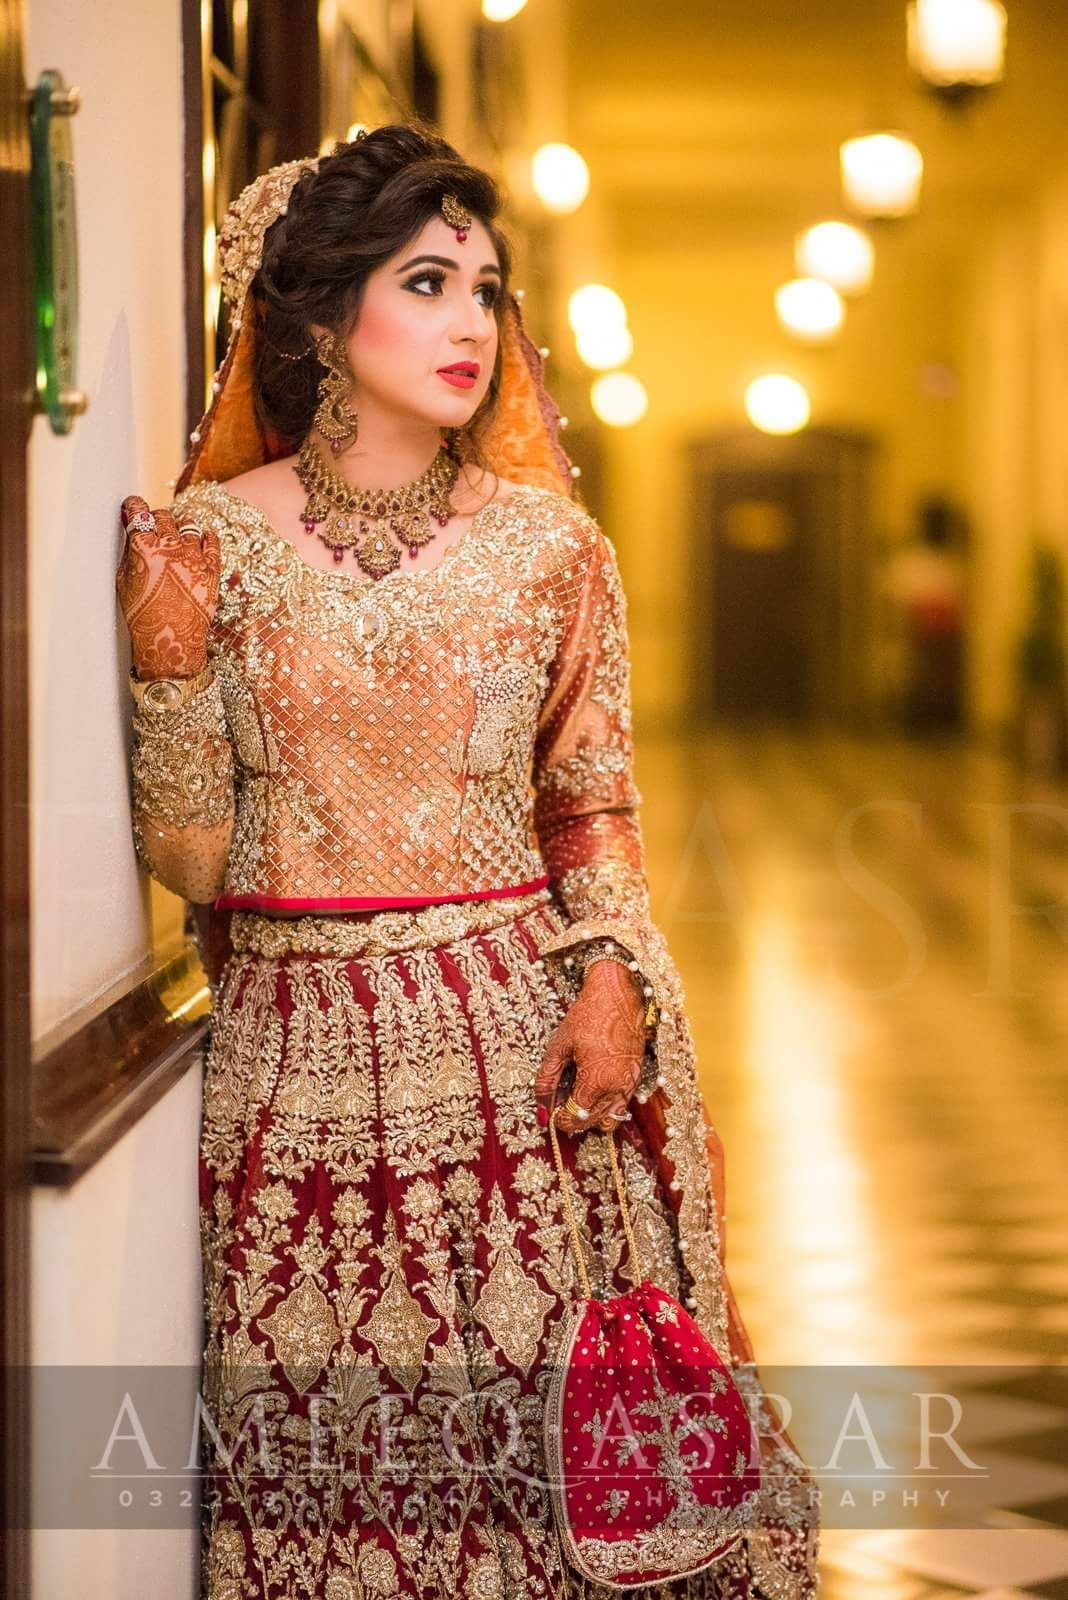 photography by ameeq asrar | wedding photography of barat brides